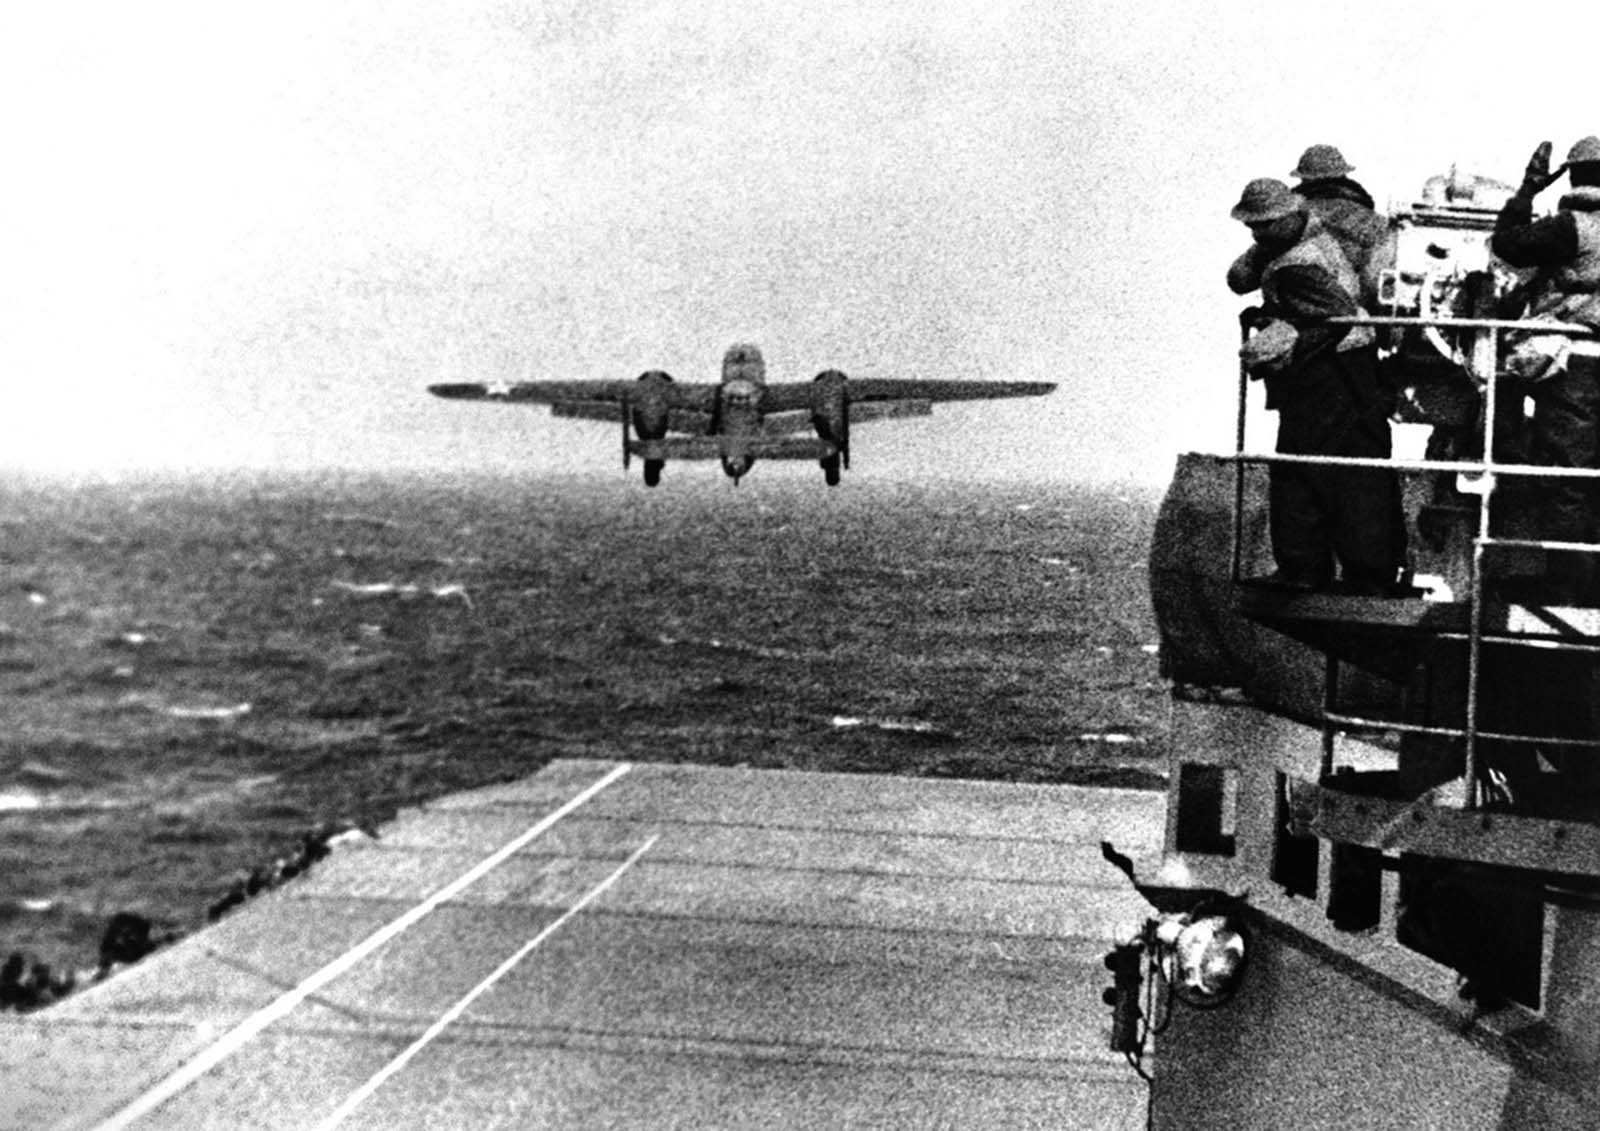 A U.S. Army Air Force B-25B bomber leaves the deck of the USS Hornet, for the historic raid on Tokyo under Maj. Gen. James Doolittle, on April 18, 1942. Each aircraft carried three 500-pound high-explosive bombs and one incendiary bomb.